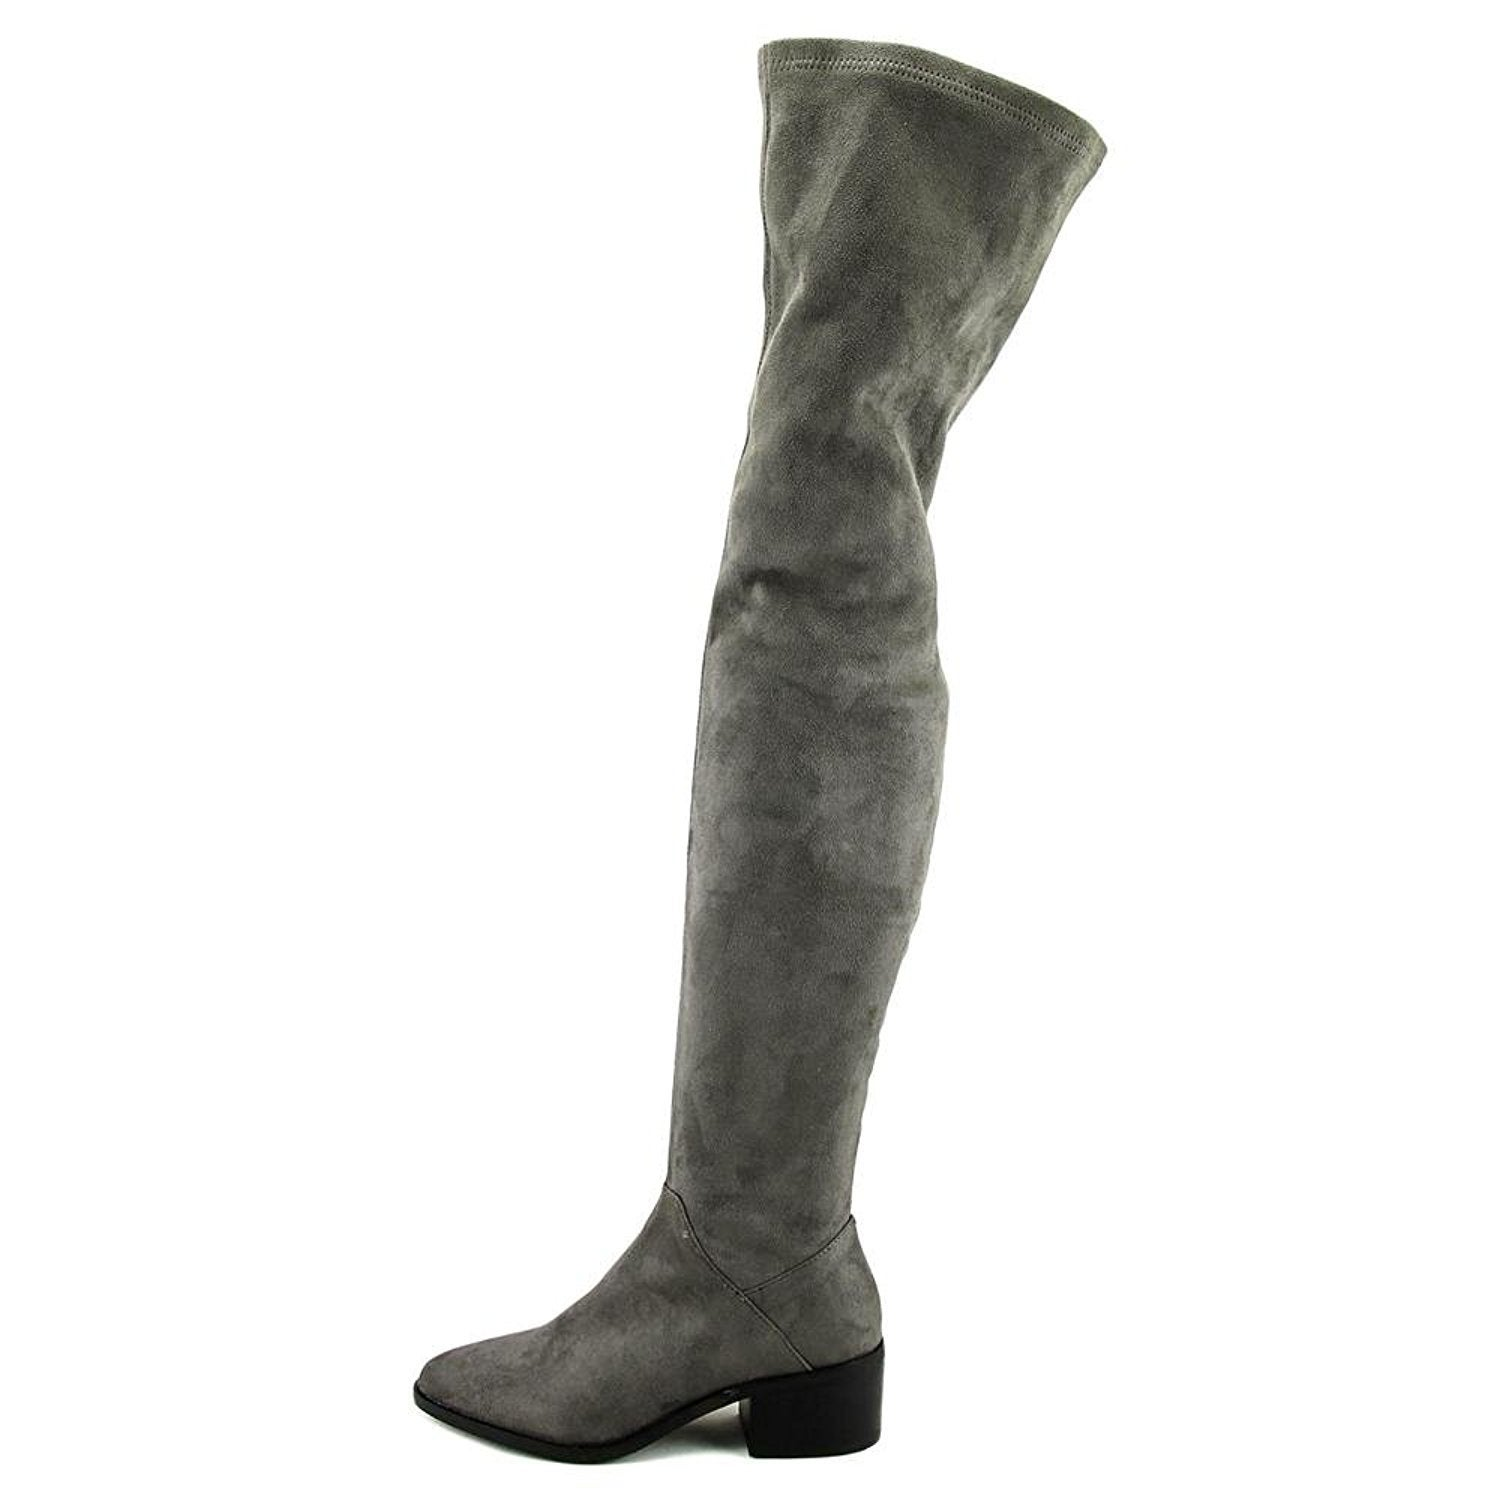 21e816b511f Shop Steve Madden Womens Gabriana Suede Almond Toe Over Knee Fashion Boots  - Free Shipping On Orders Over  45 - Overstock - 17518986